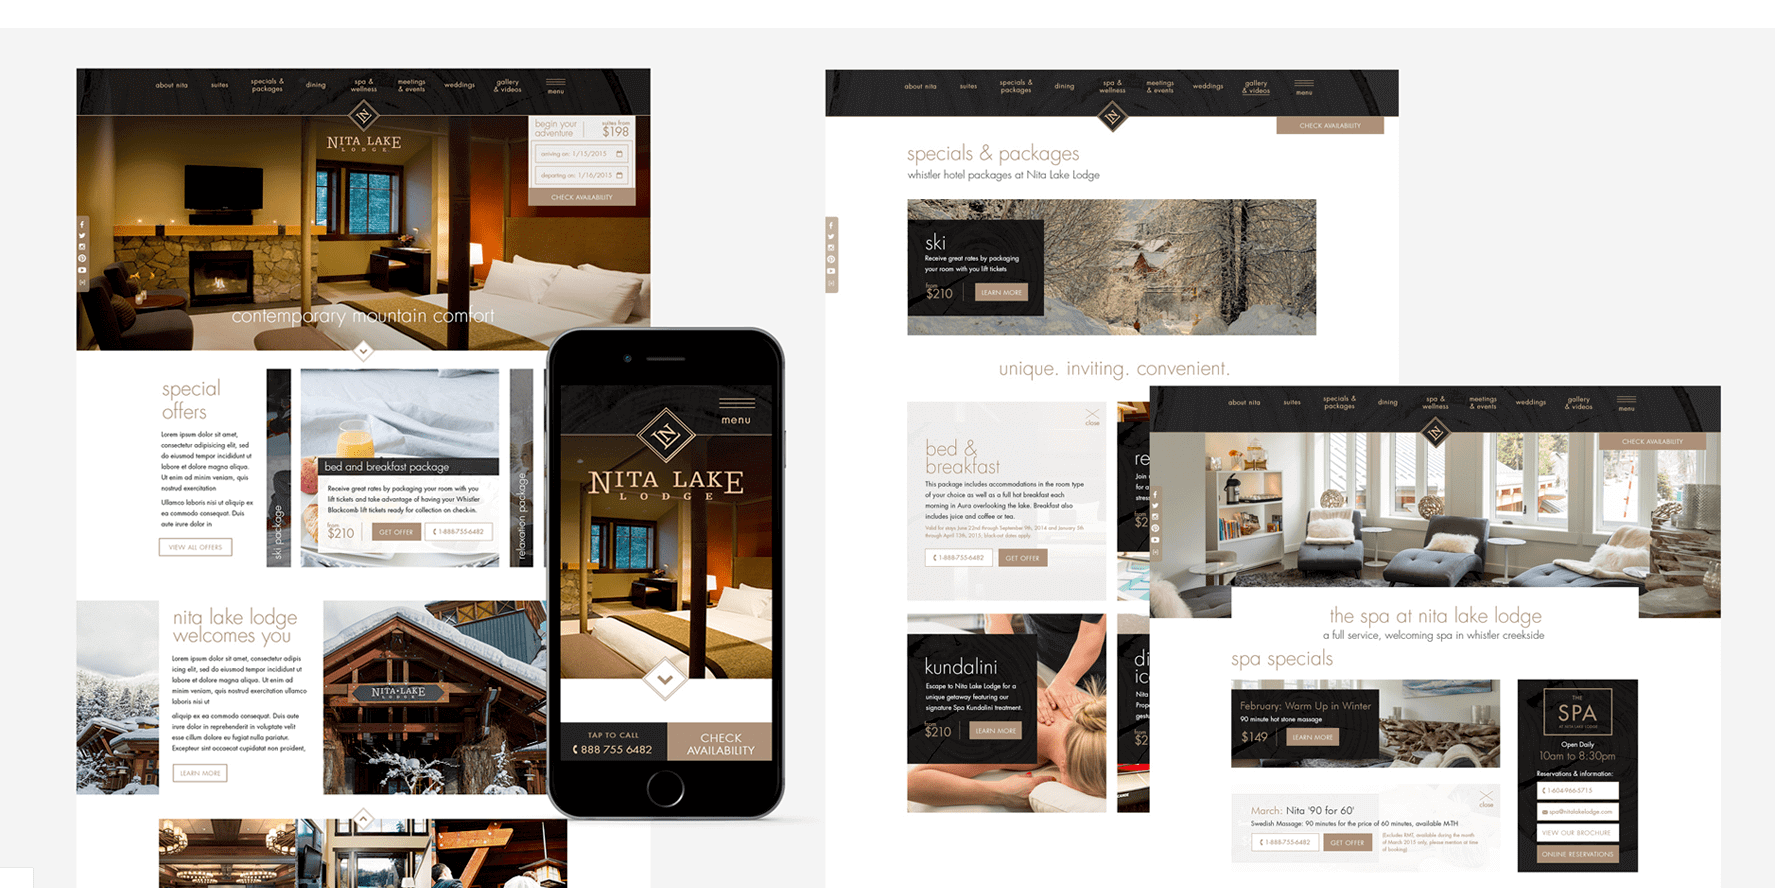 Nita Lake Lodge Website Design 1